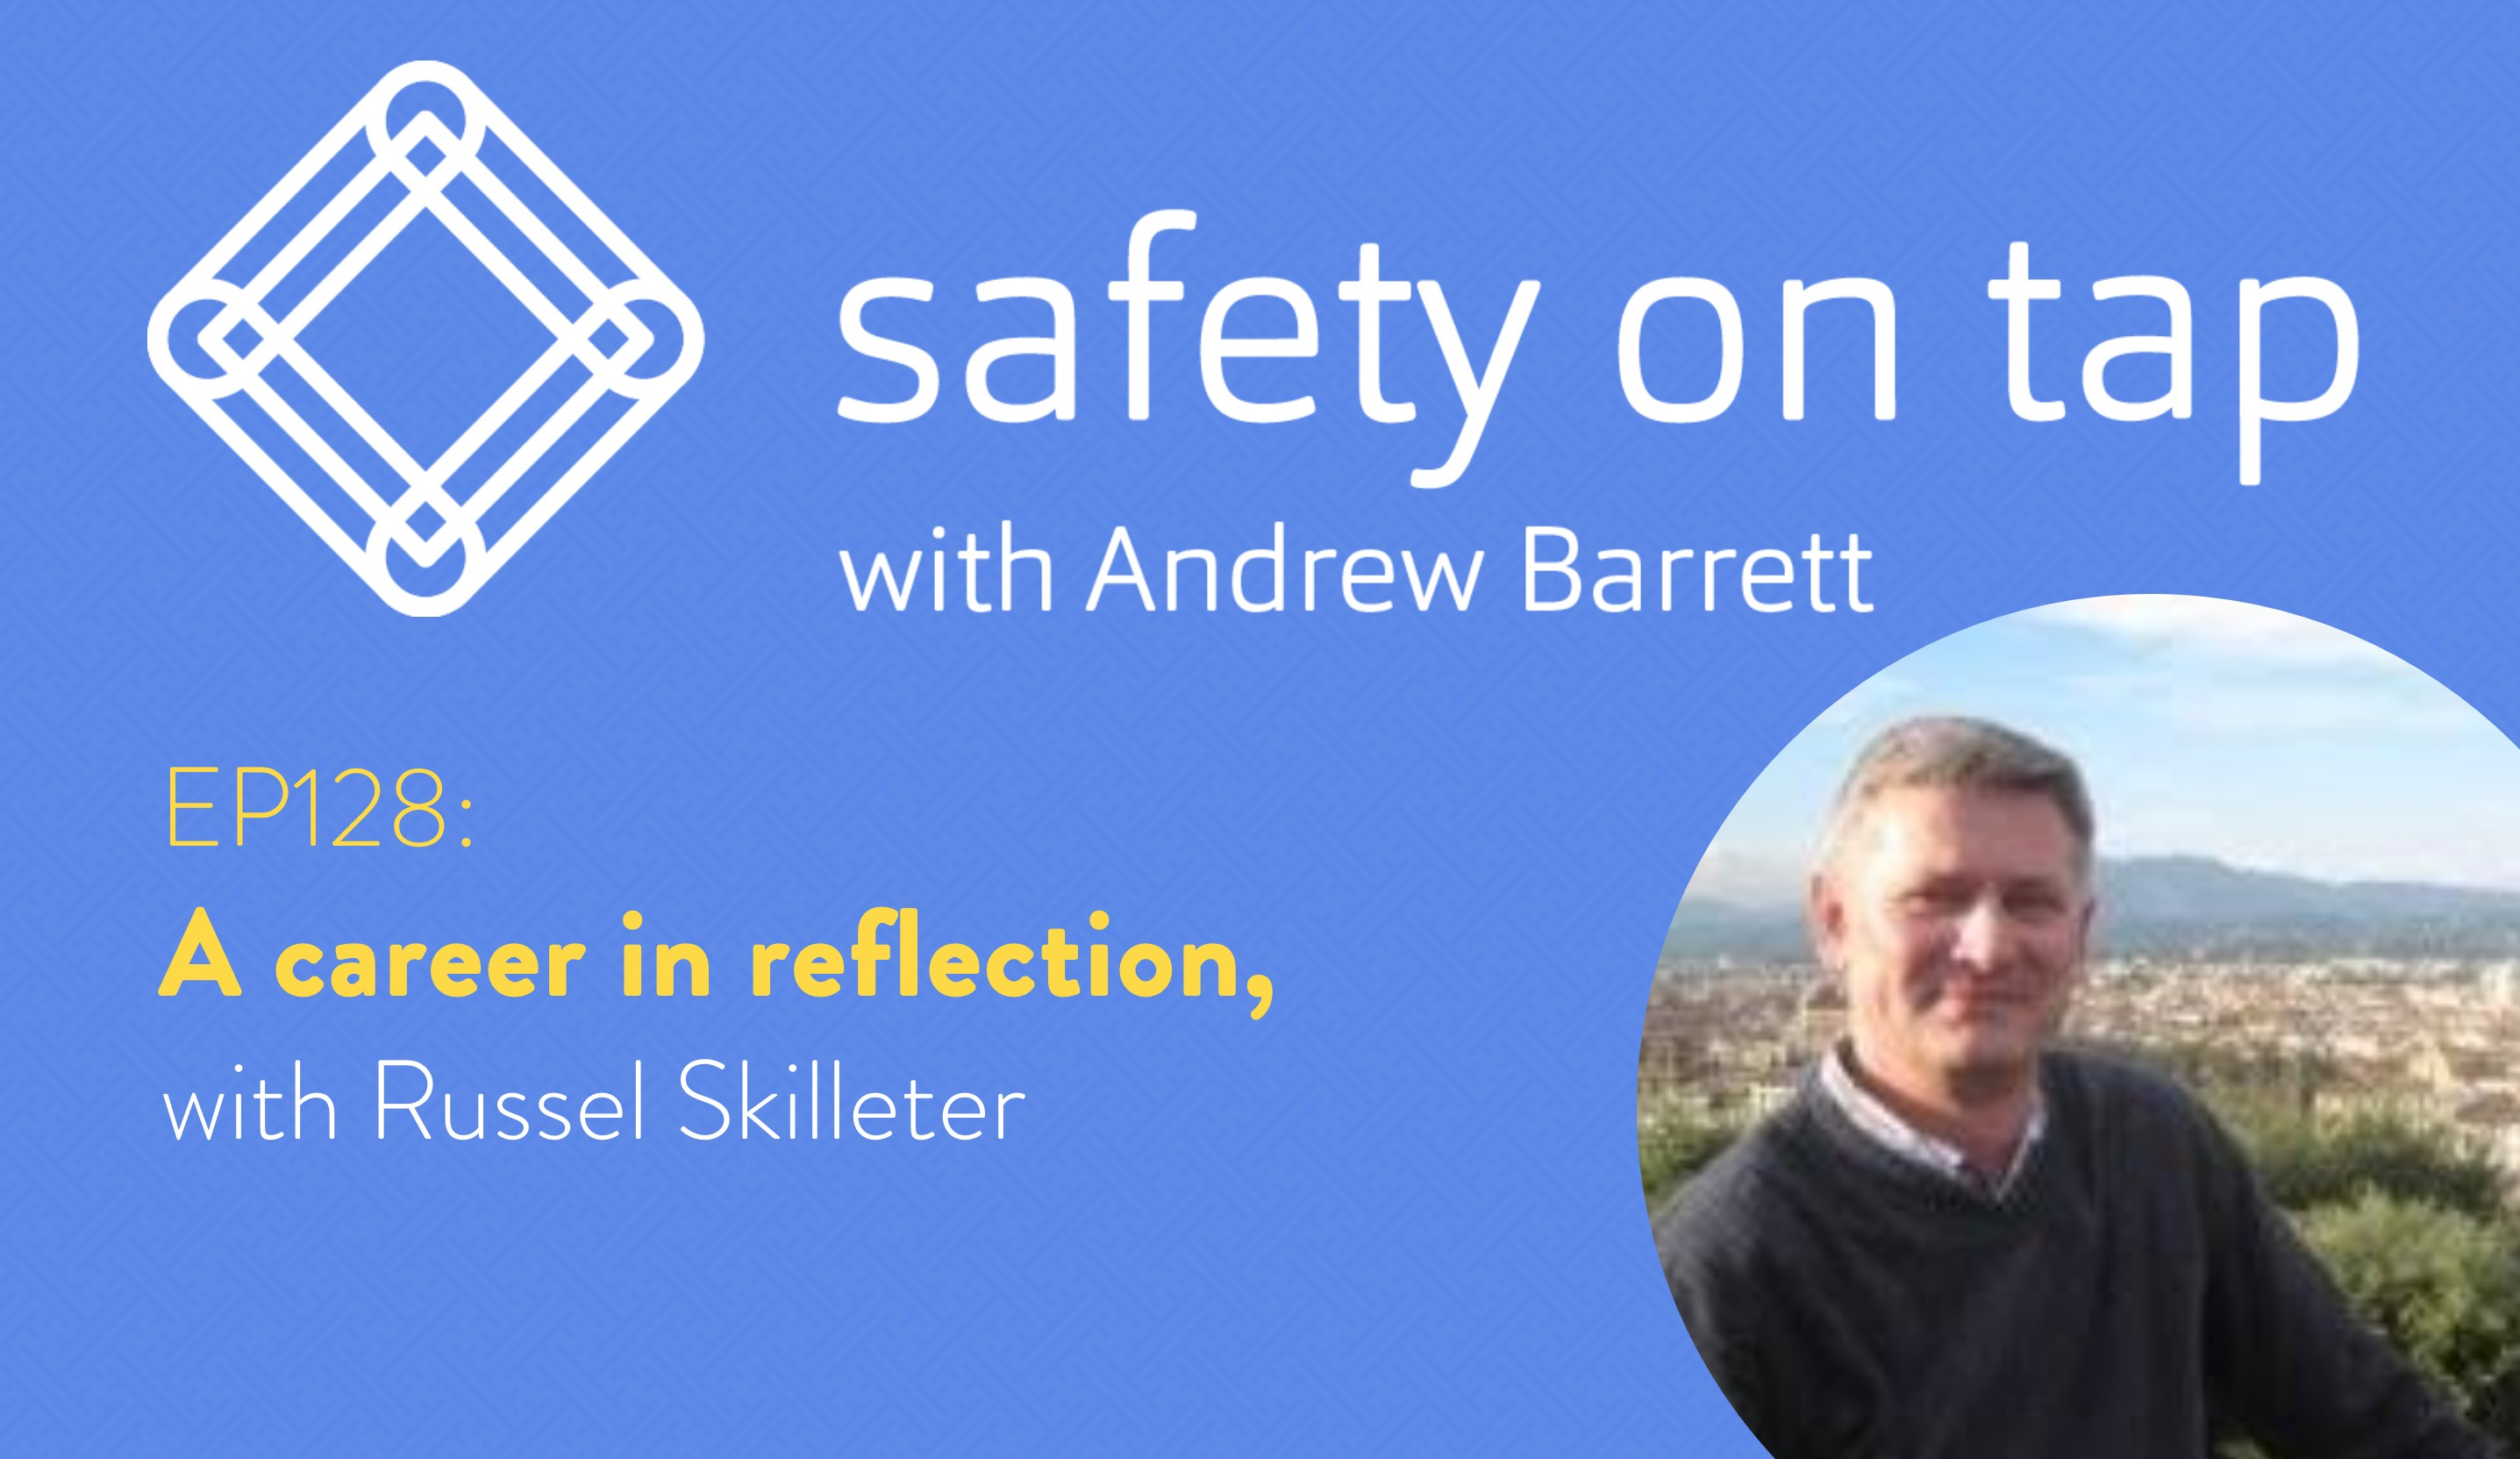 Ep128: A career in reflection, with Russel Skilleter